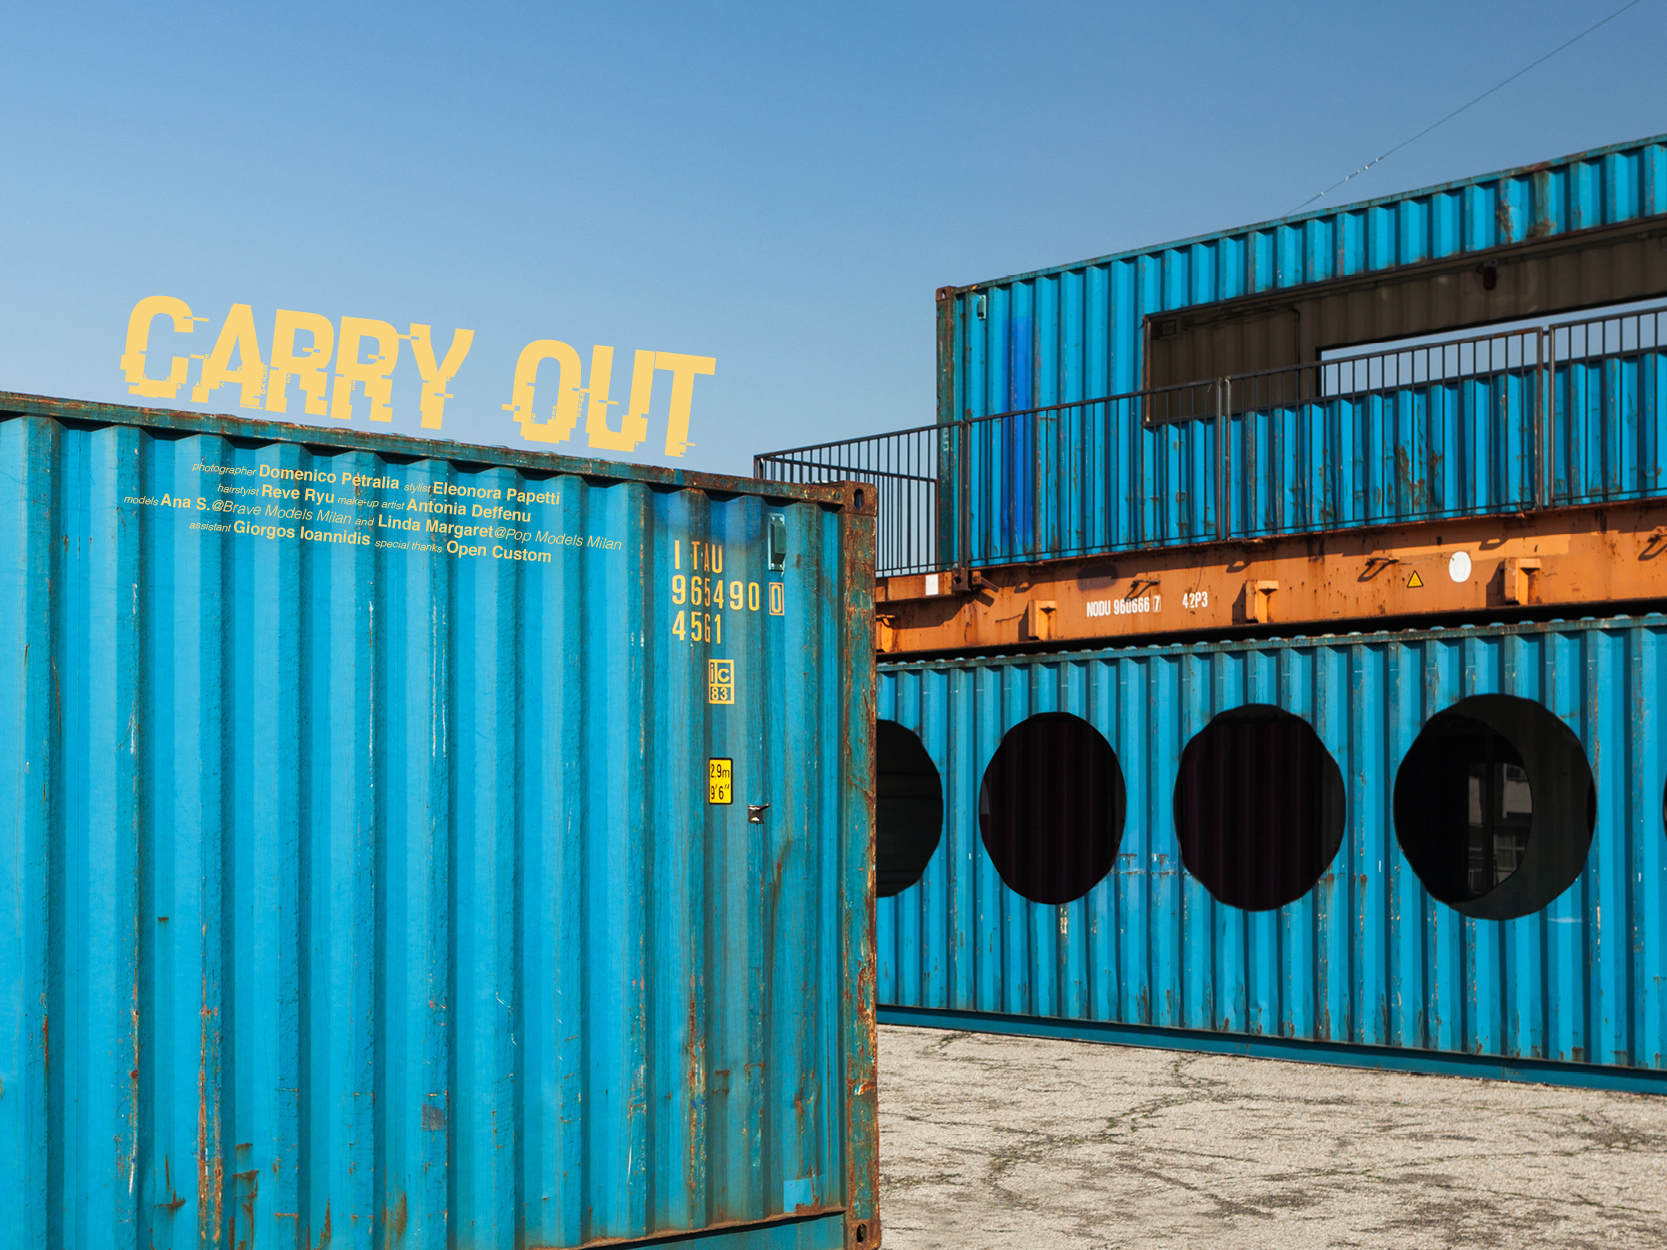 CARRY OUT by Domenico Petralia